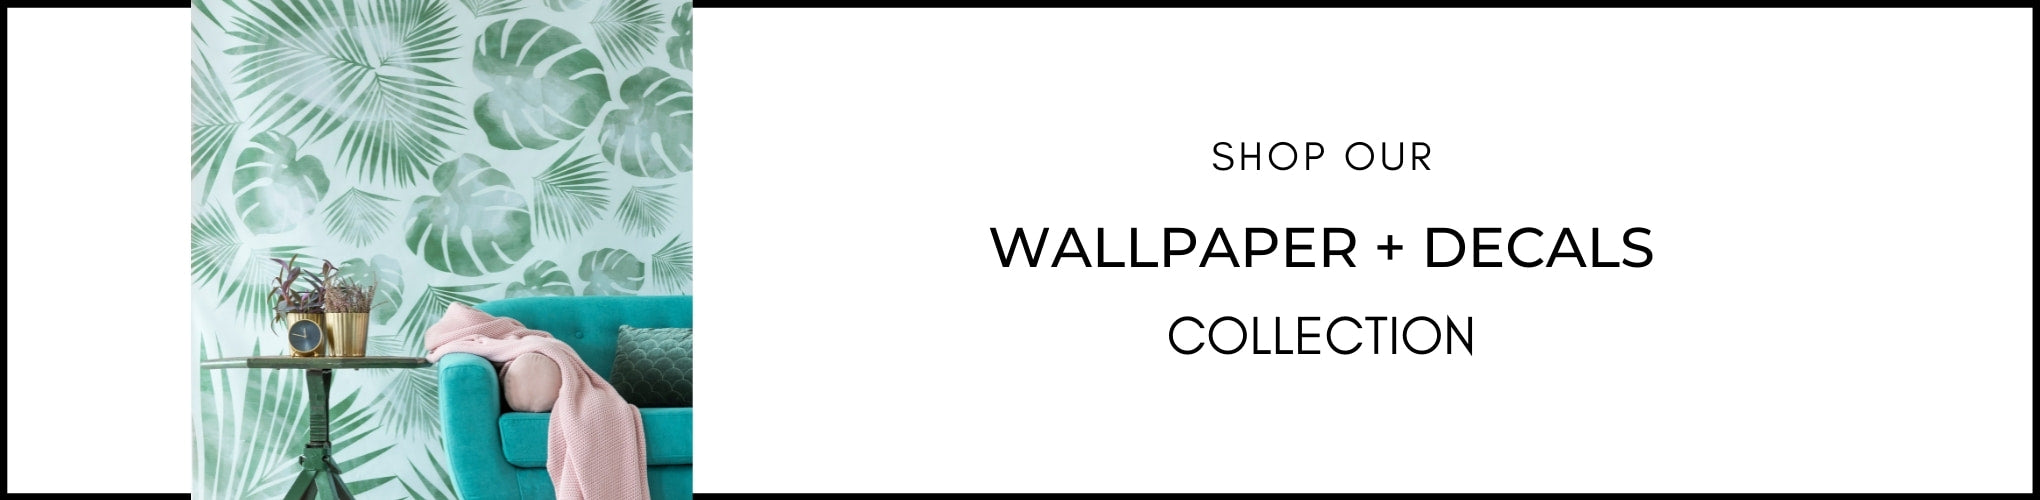 Wallpaper and Decals Collection from Estilo Living - Buy  Wallpaper and Decals for small spaces and homes Online Now!